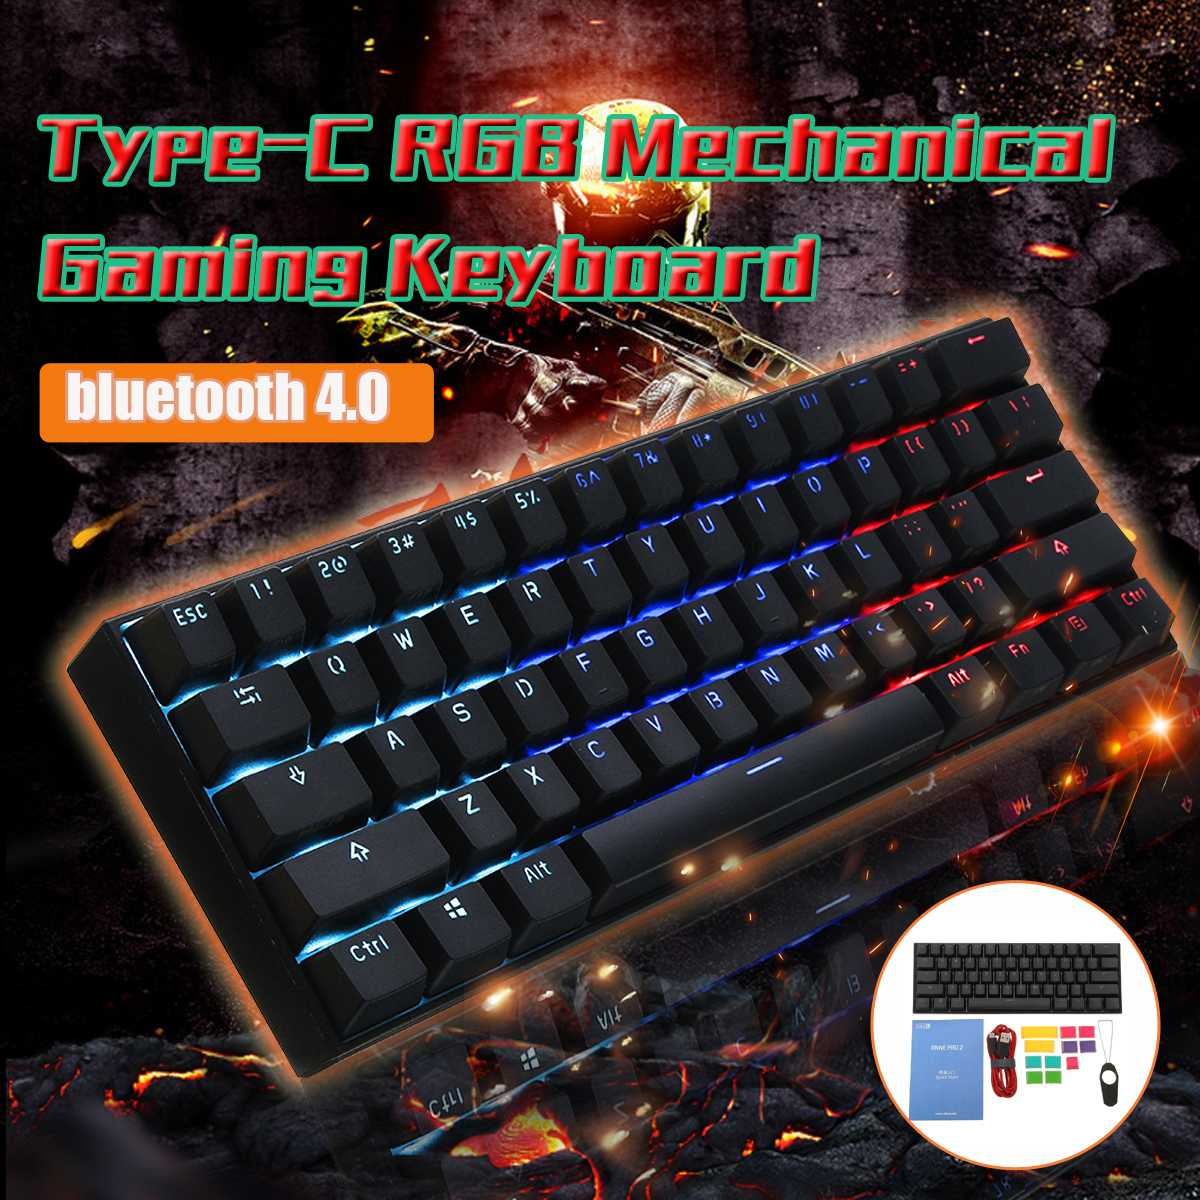 LEORY Cherry Switch Obins Anne Pro 2 60% NKRO blue tooth 4.0 and Type-C USB-C Dual Mode Connection  Mechanical Gaming Keyboard ducky one cherry mx red